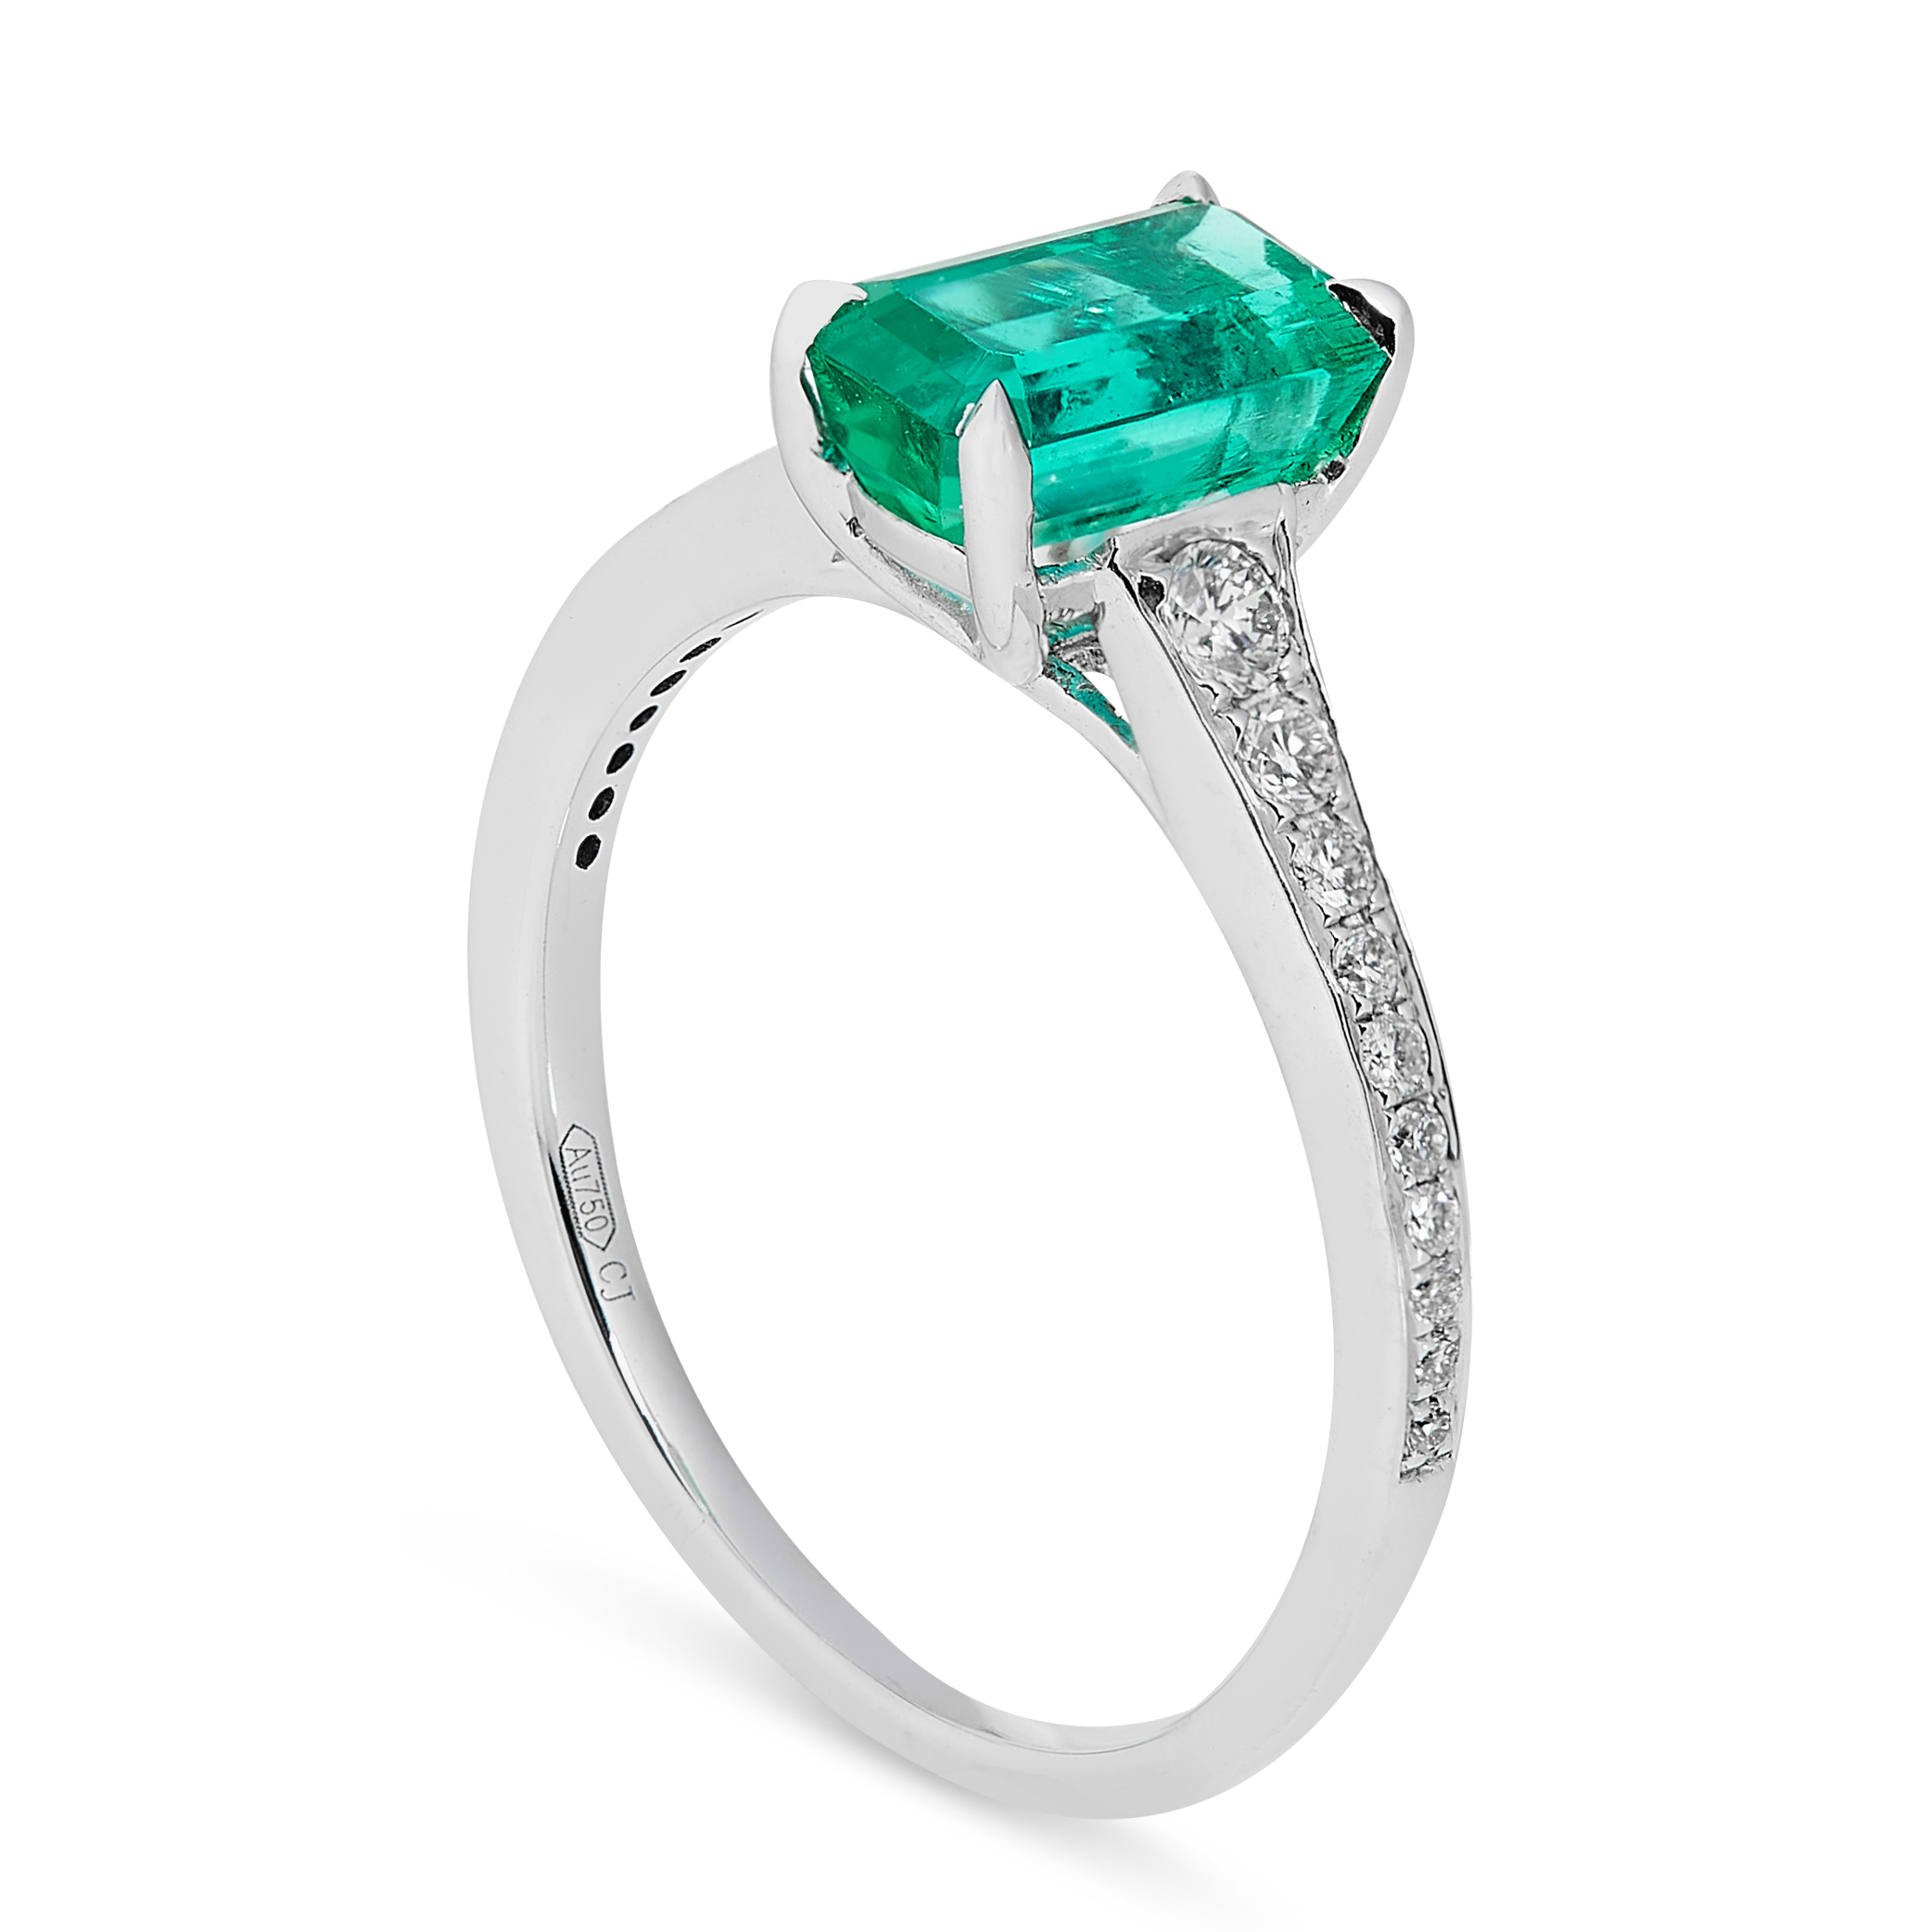 A COLOMBIAN EMERALD AND DIAMOND RING in 18ct white gold, set with an emerald cut emerald of 1.42 - Image 2 of 2